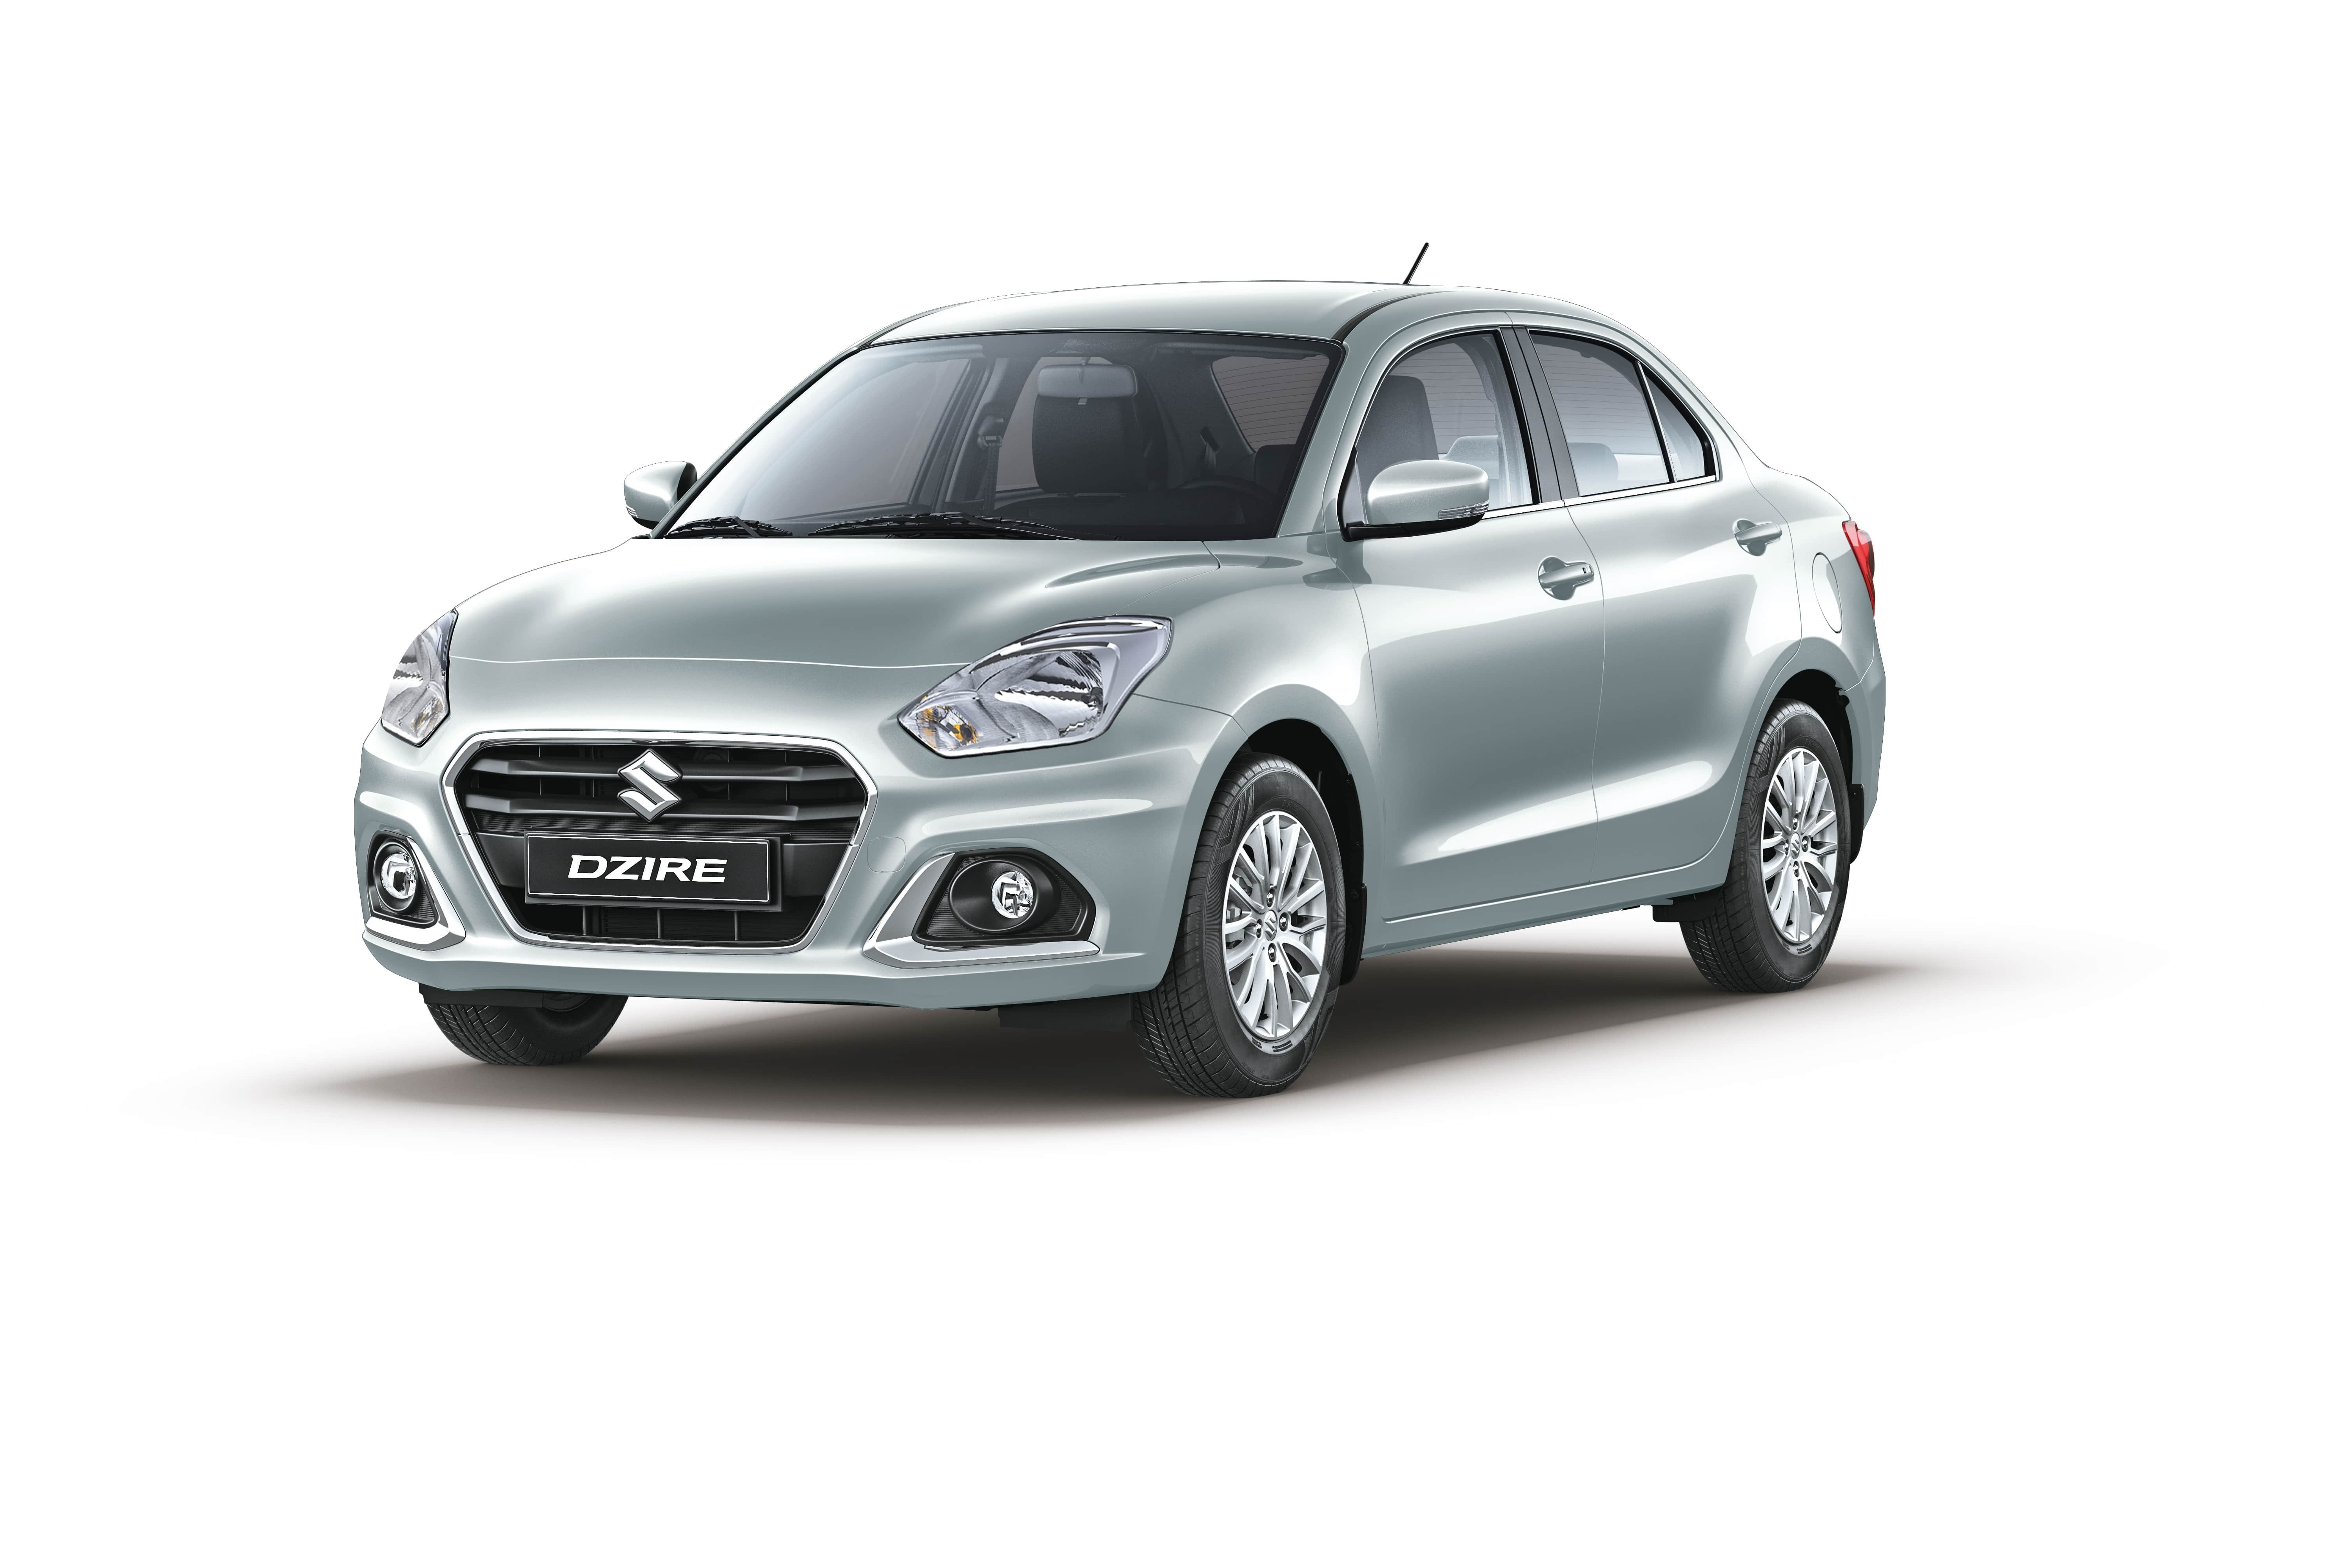 The New Dzire Premium Silver Metallic